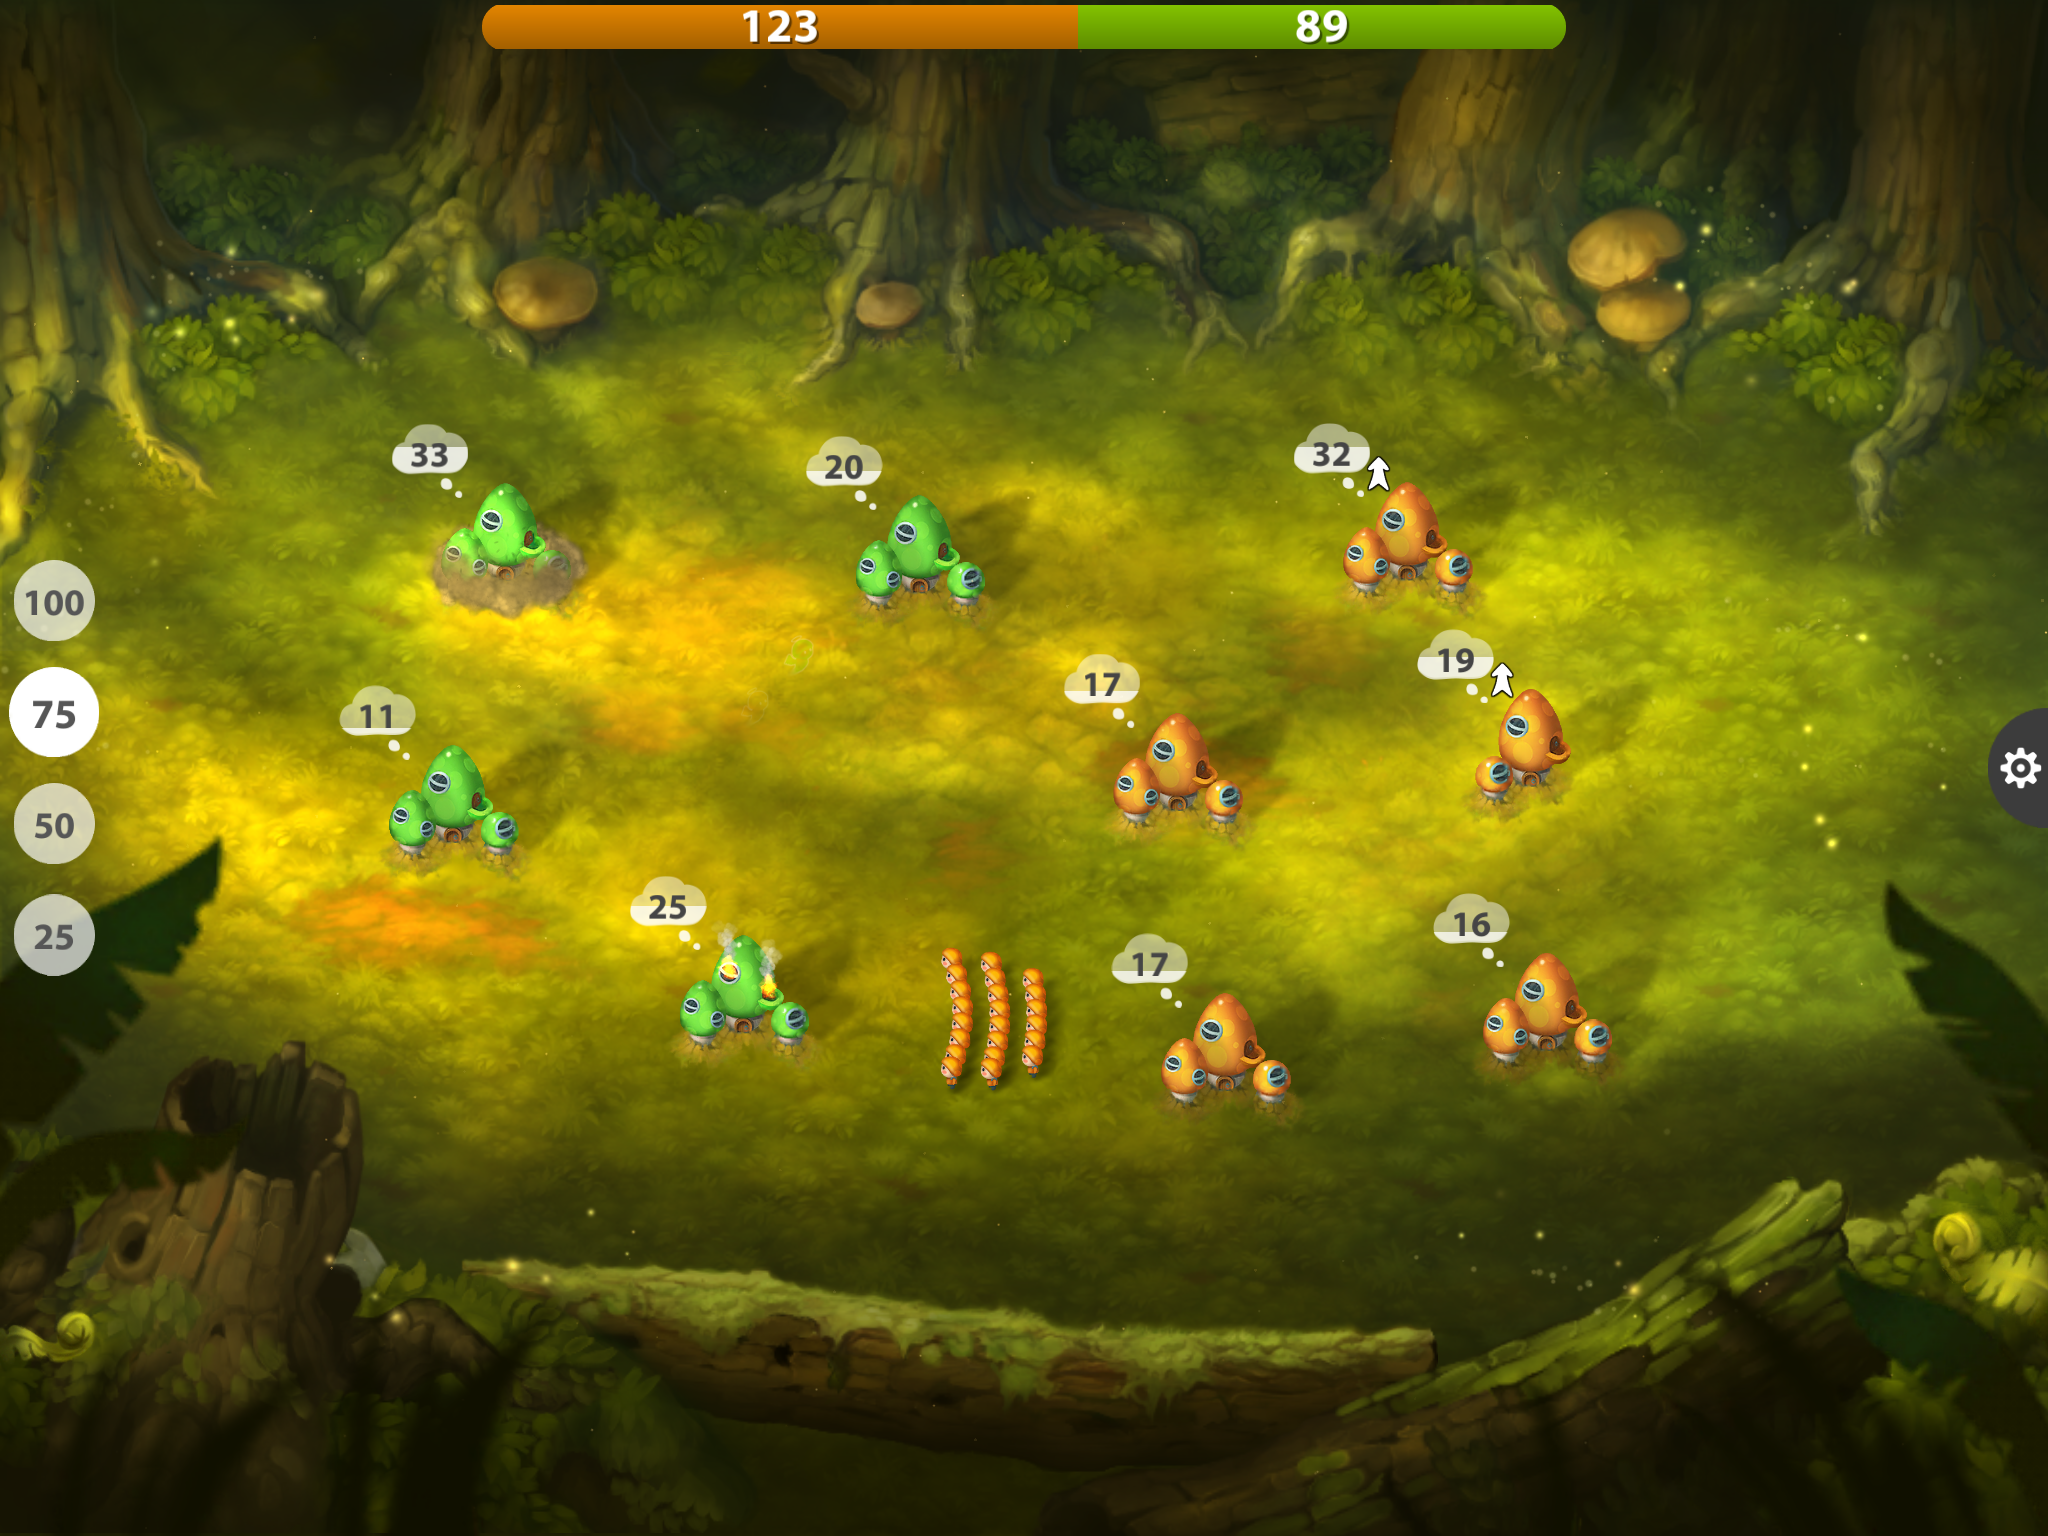 Mushroom Wars 2 review - A strategy game by the numbers